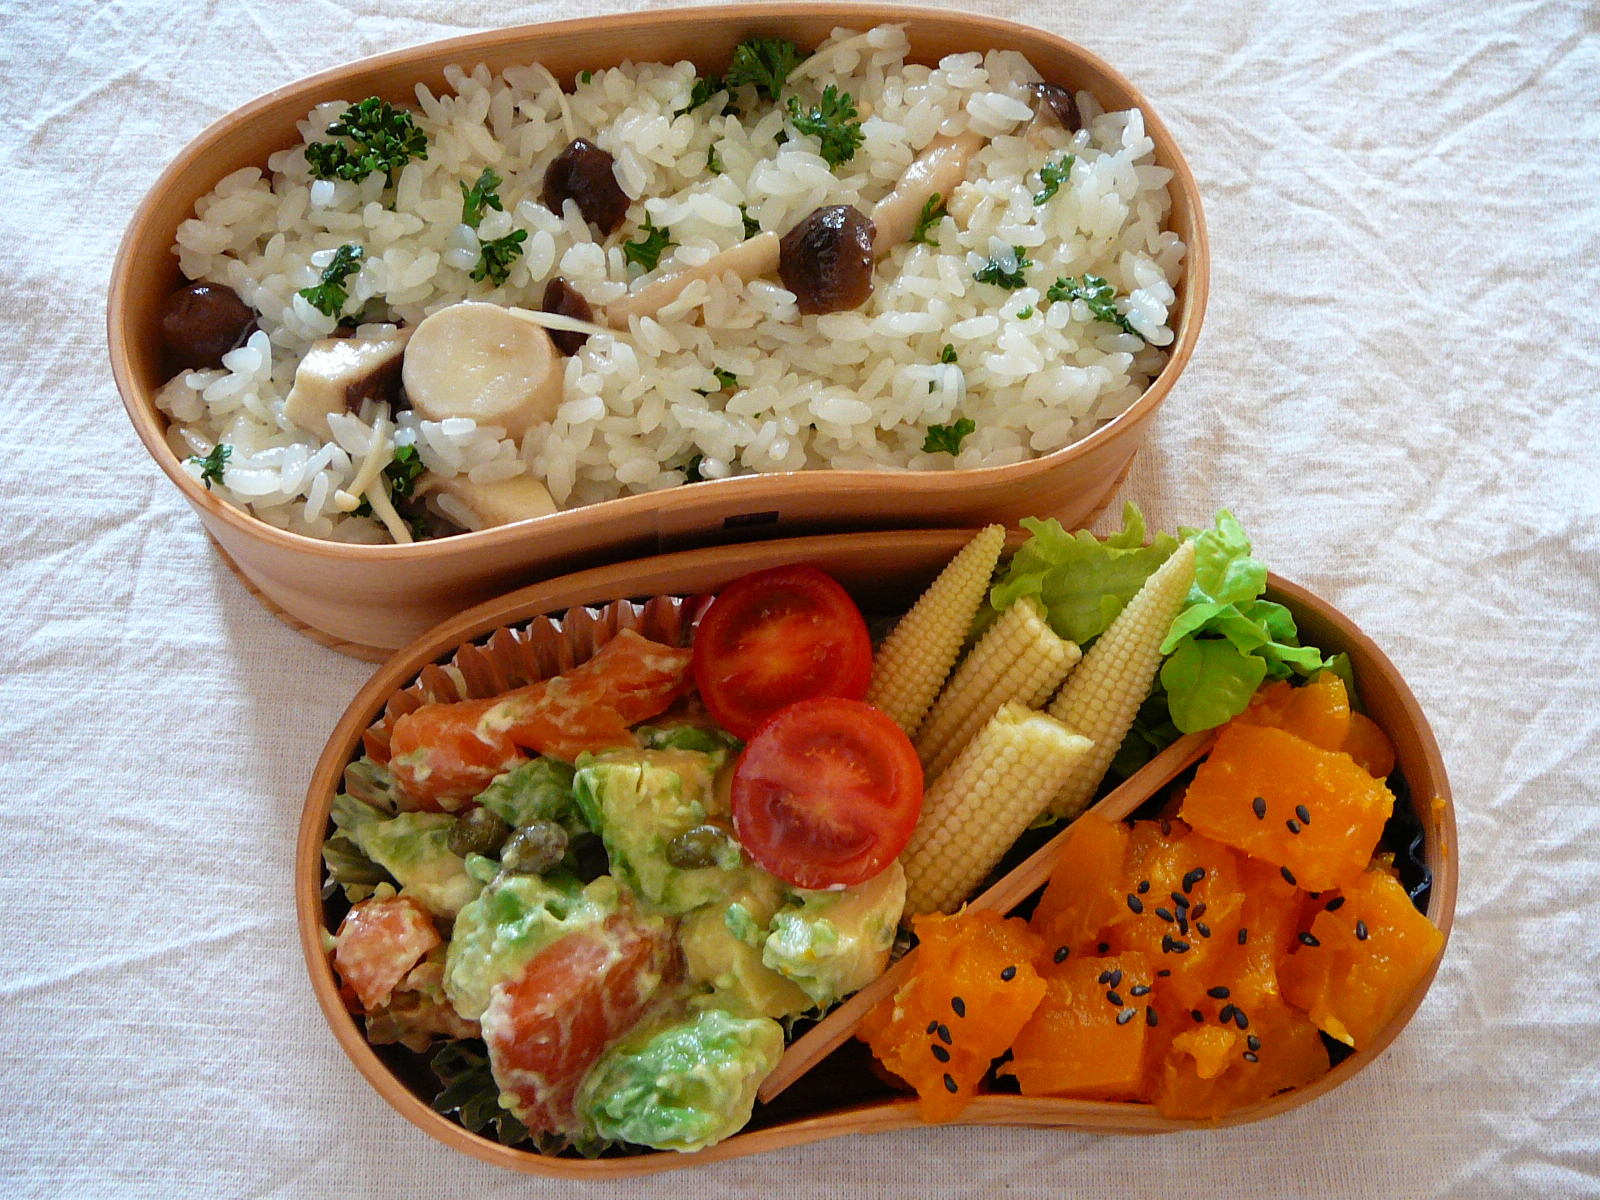 Practical and fun bento box tips and ideas, healthy bento recipes from Japan and the world. Brought to you by Makiko Itoh of Just Hungry.